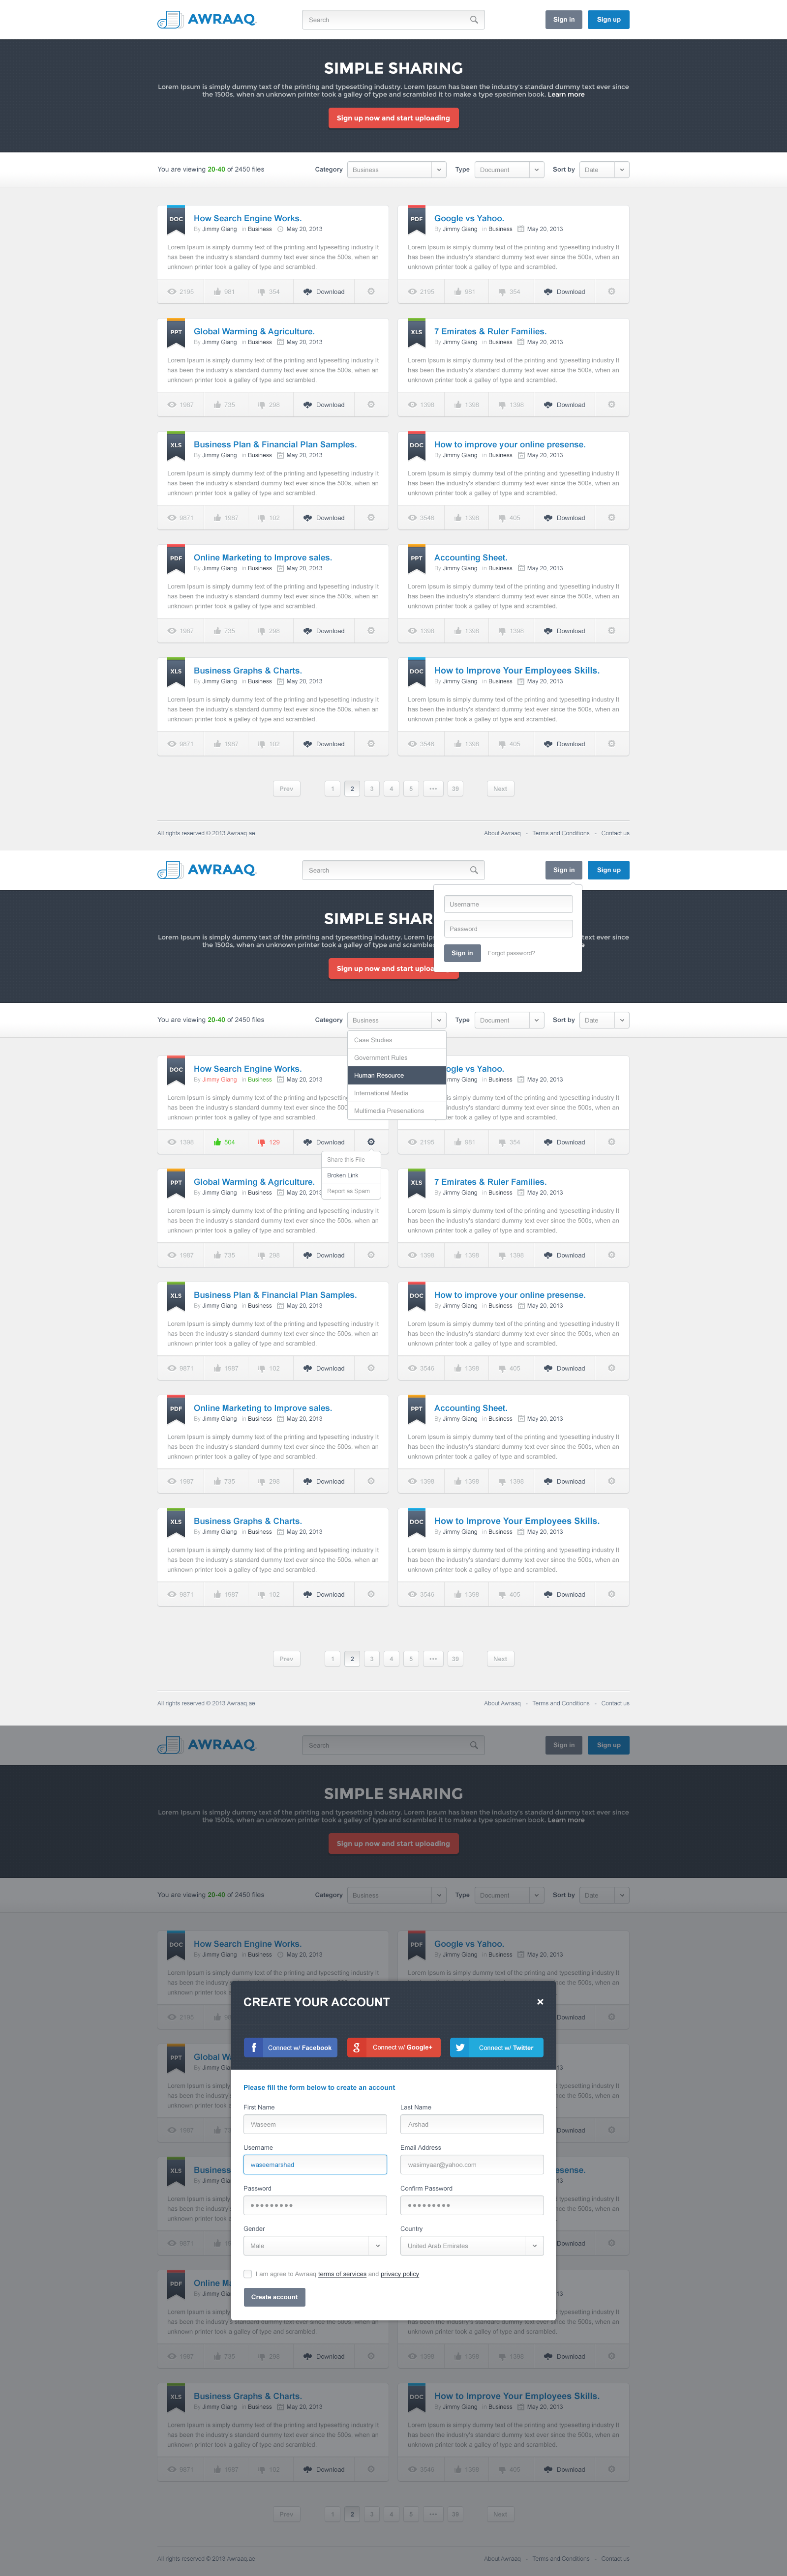 Document Sharing Website by waseemarshad